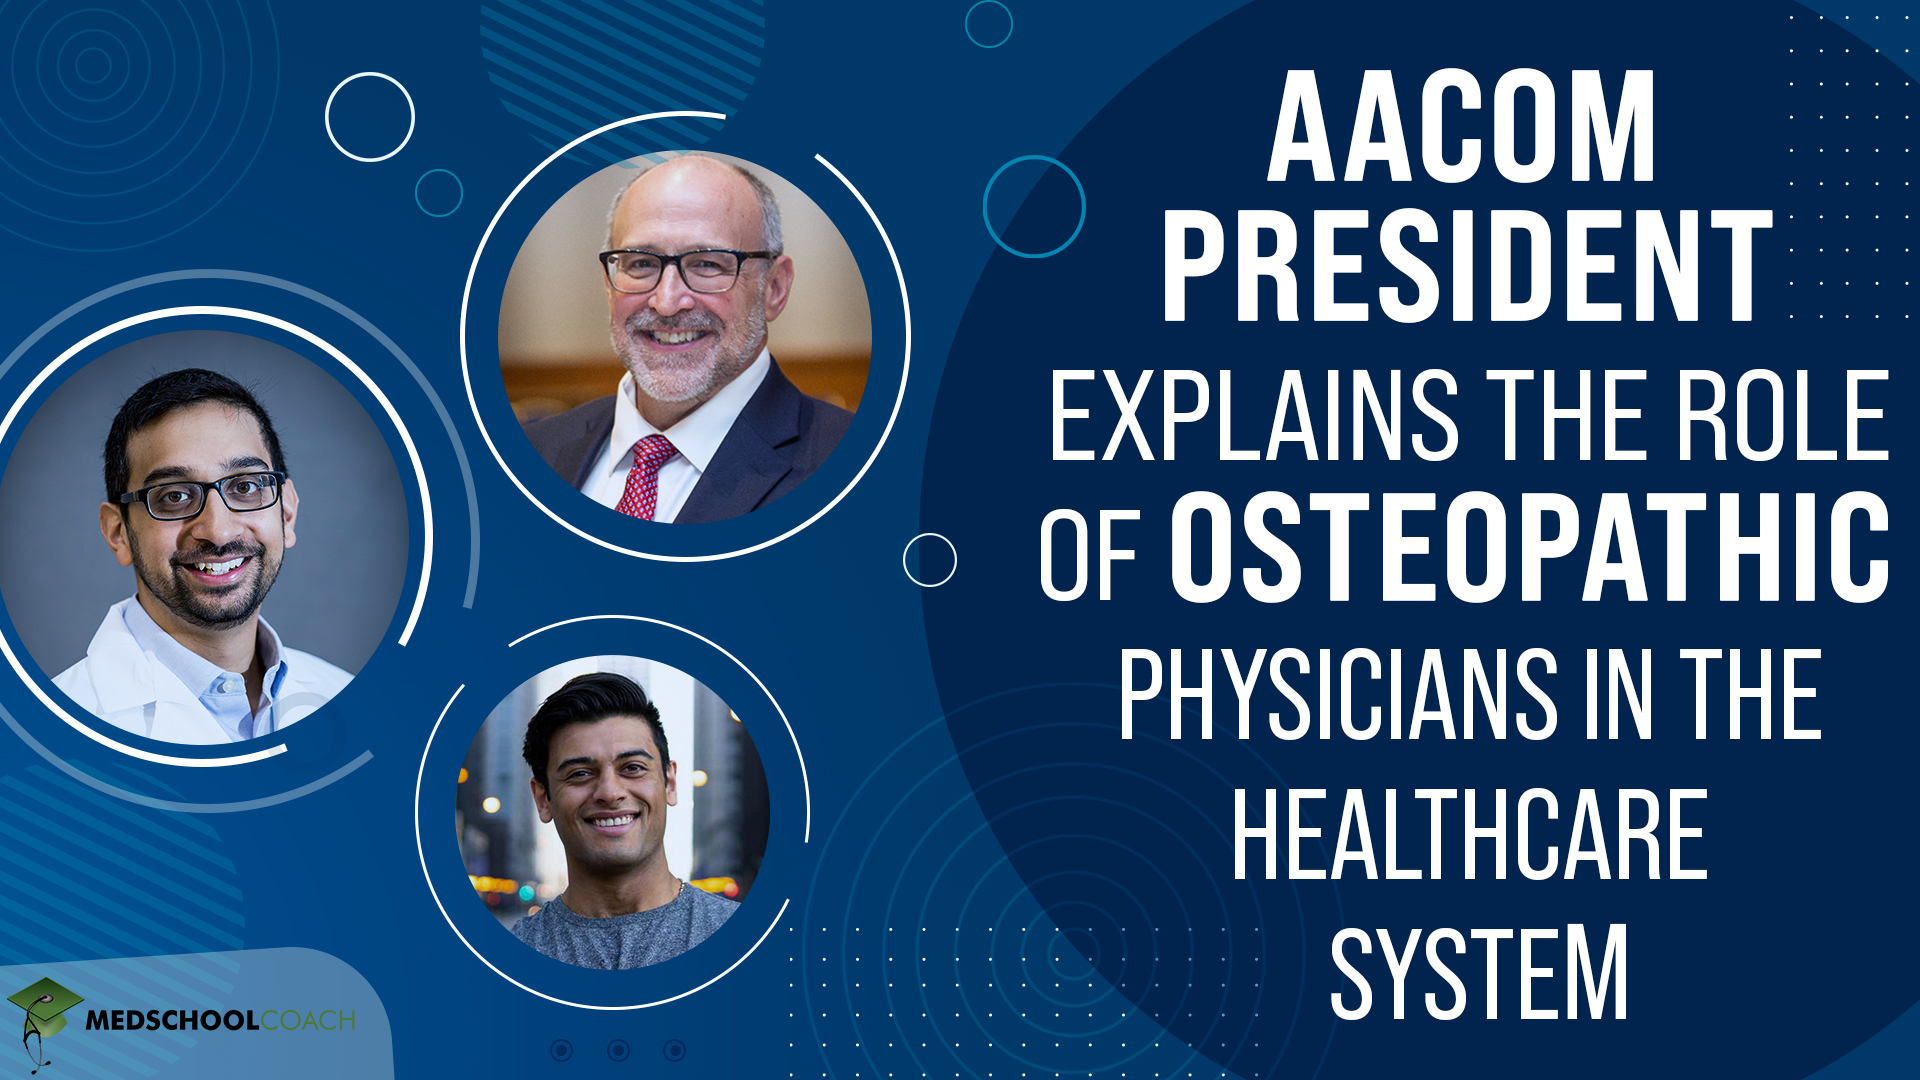 AACOM President Explains the Role of Osteopathic Physicians In the Healthcare System